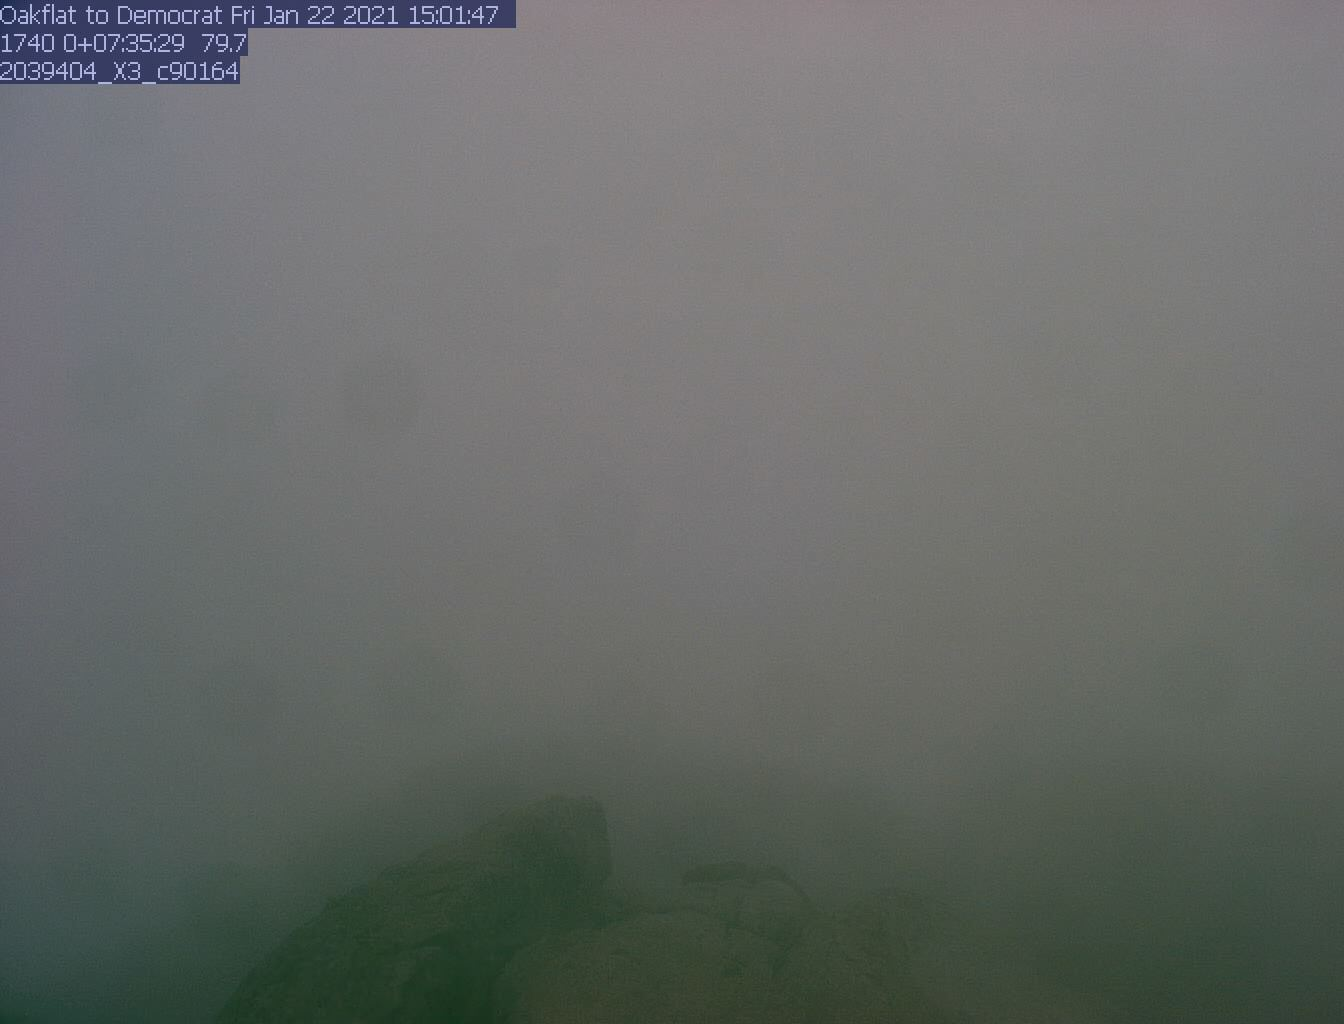 Oakflat - E just N of Democrat